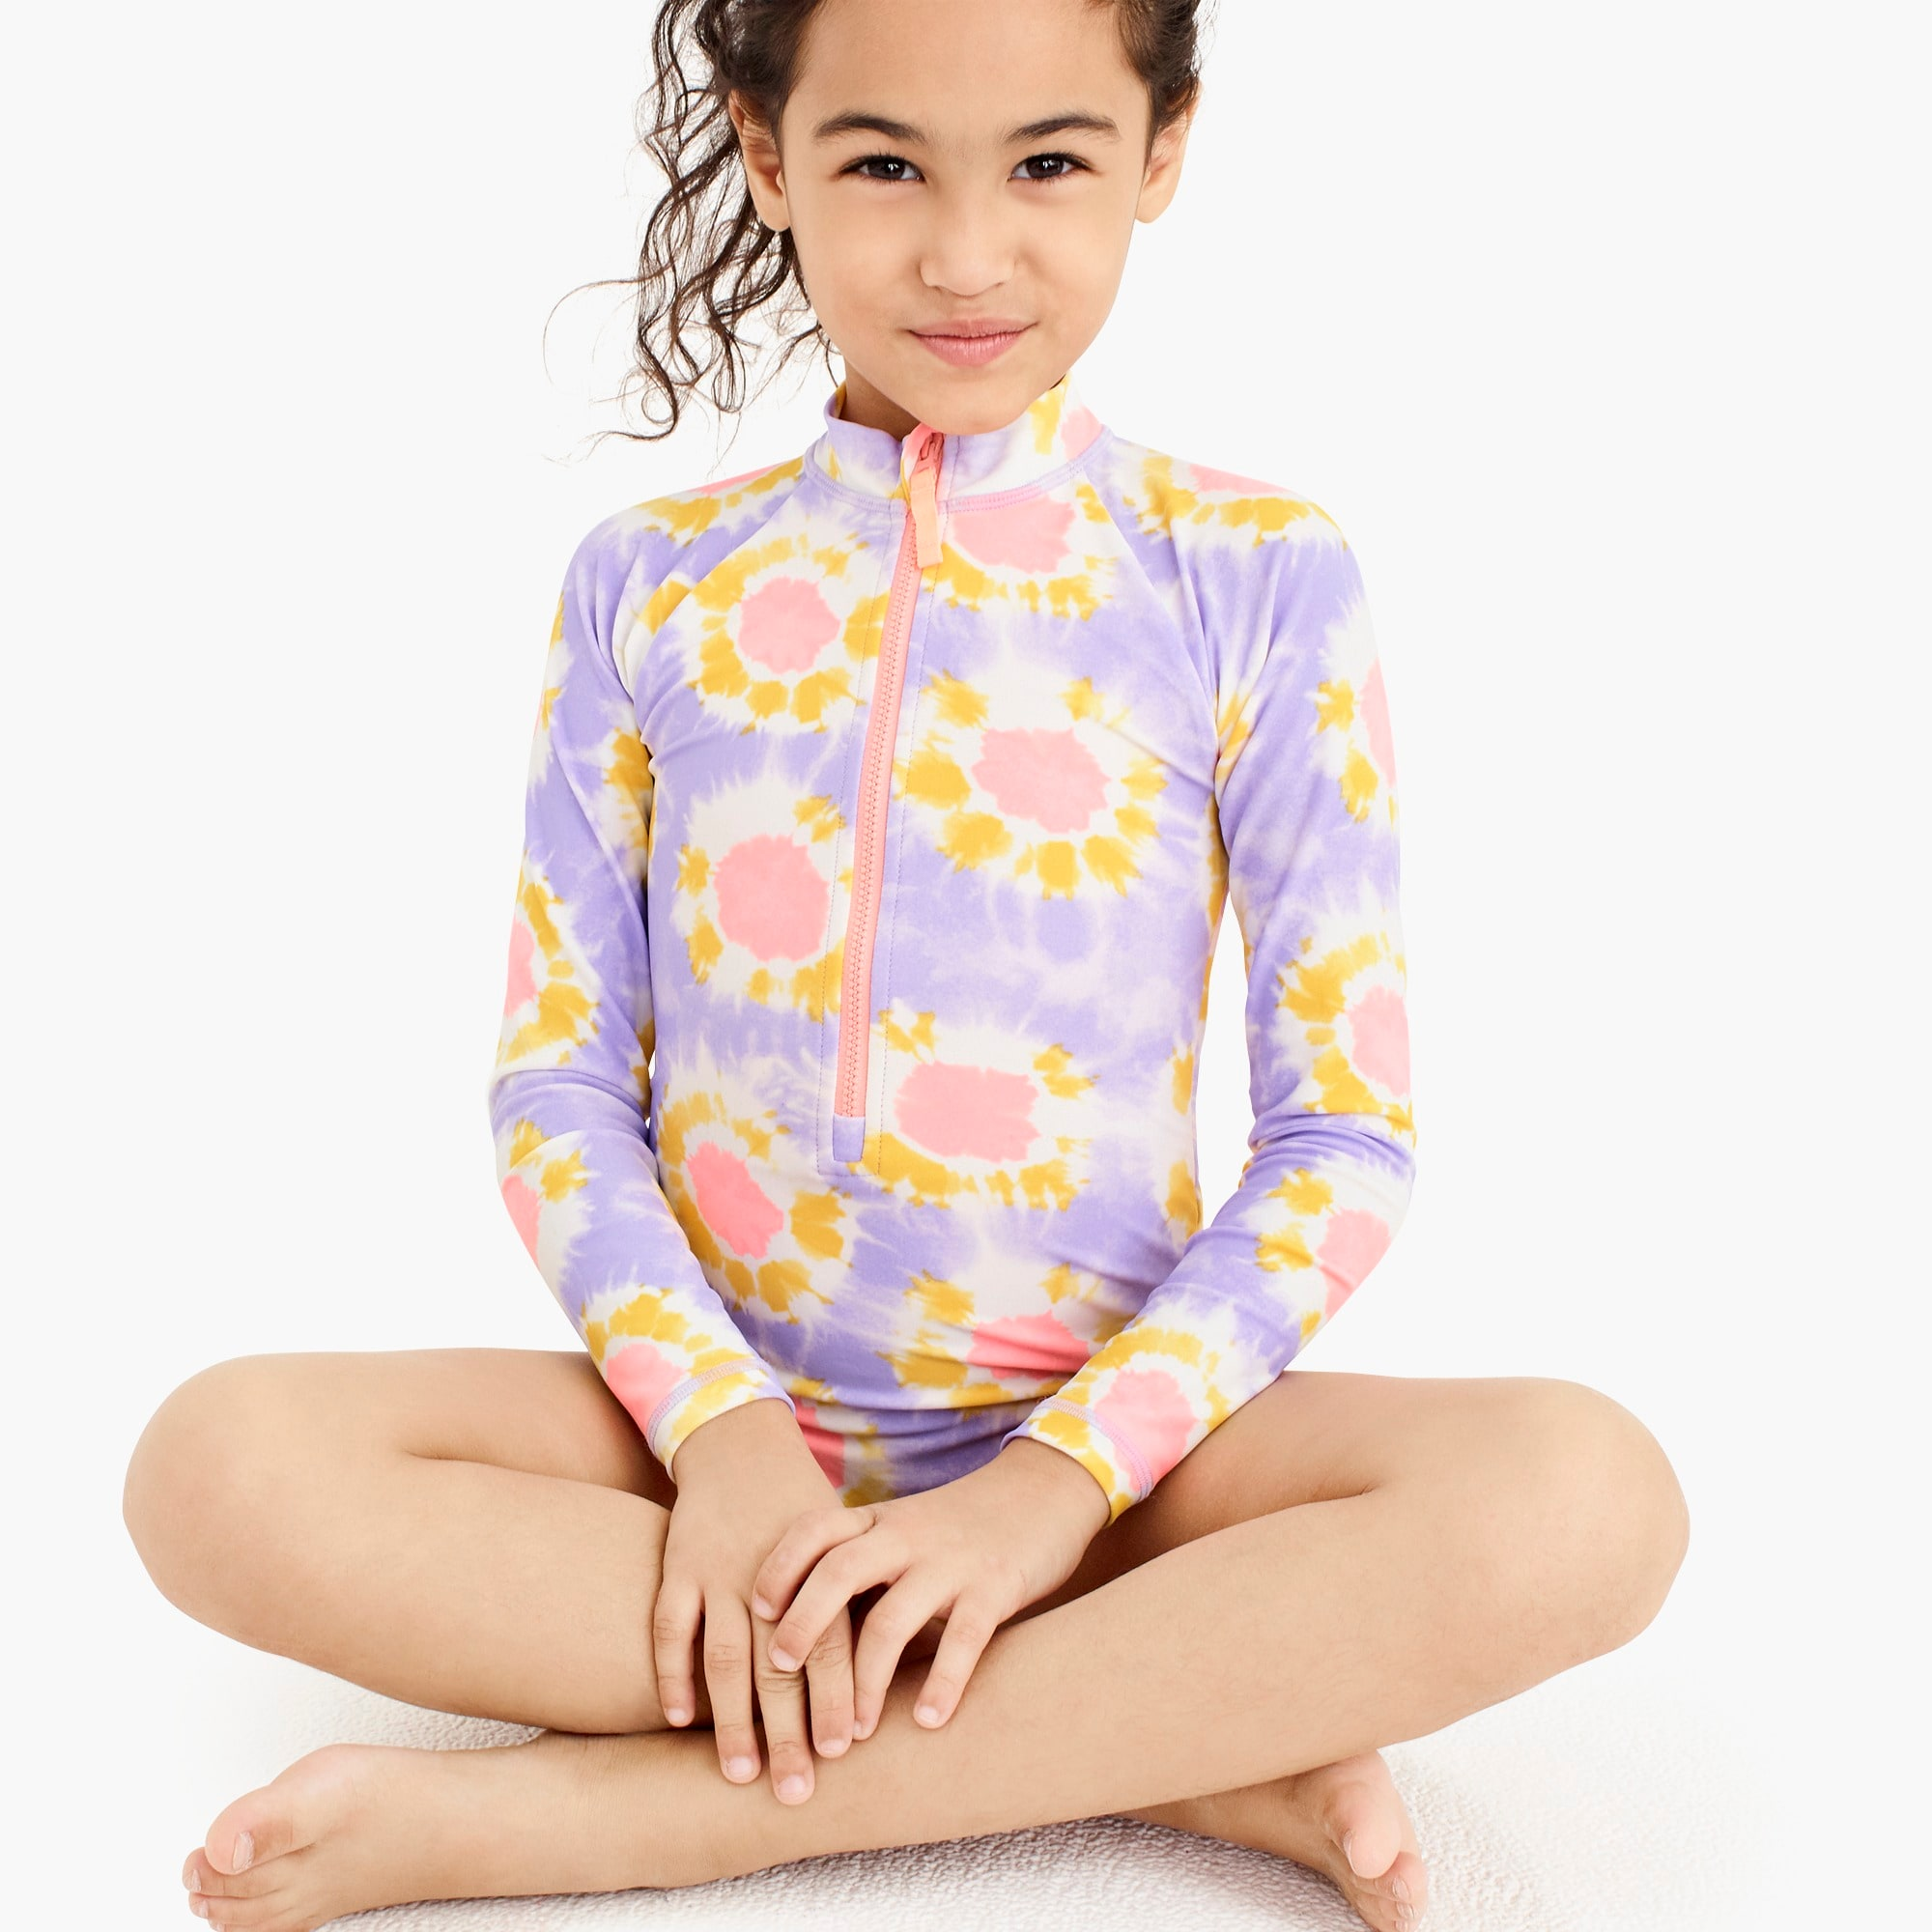 girls Girls' long-sleeve one-piece swimsuit in tie-dye